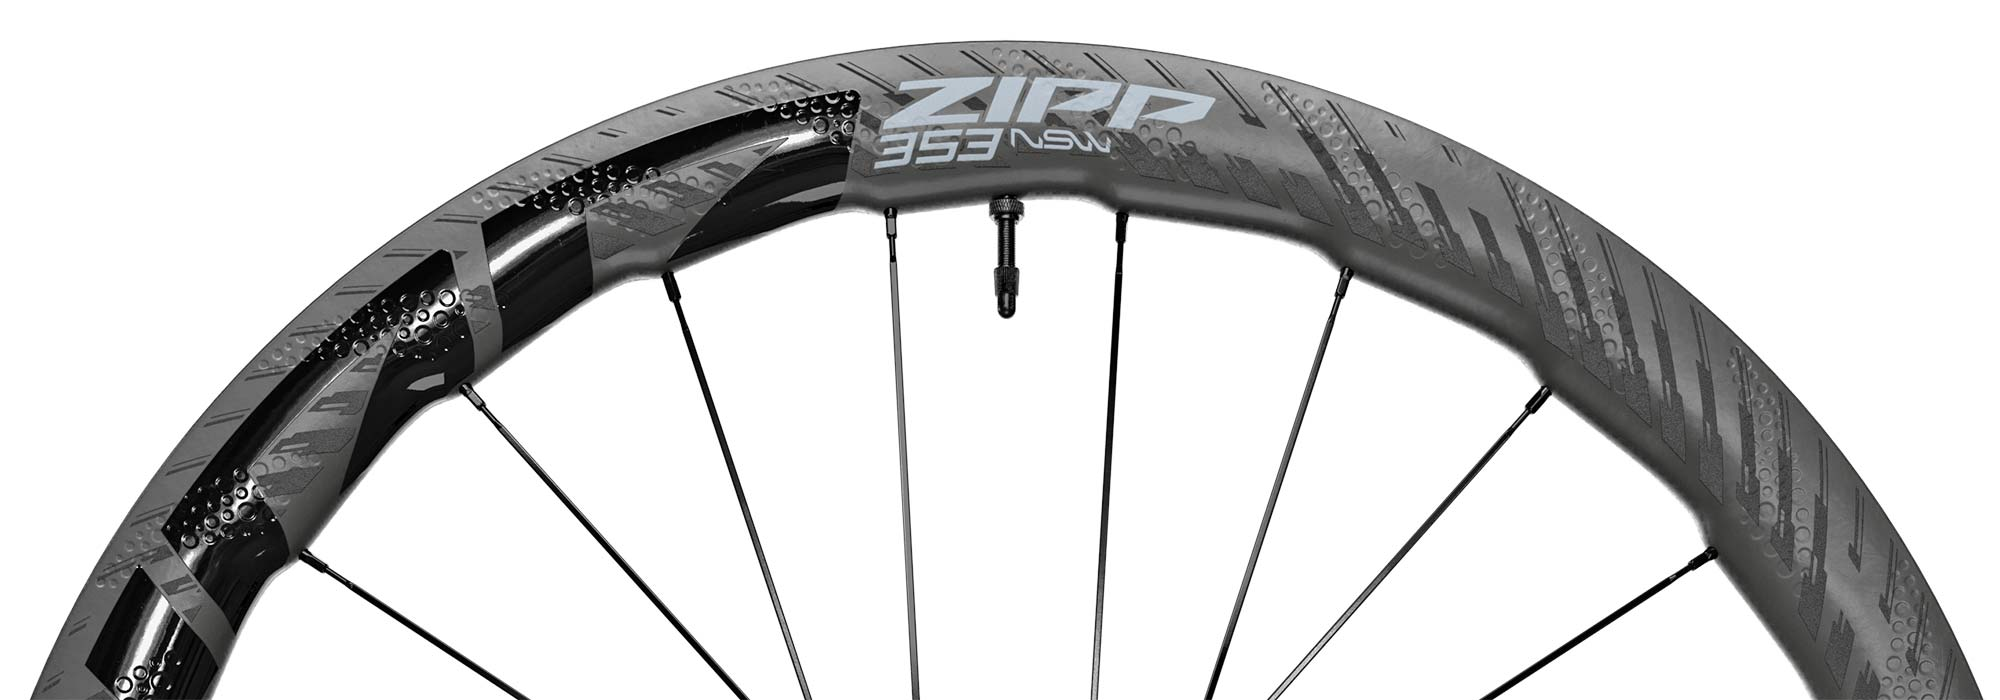 Zipp 353 NSW tubeless wheels, ultra-wide 25mm internal hookless tubeless carbon disc brake road bike wheelset, rim tech